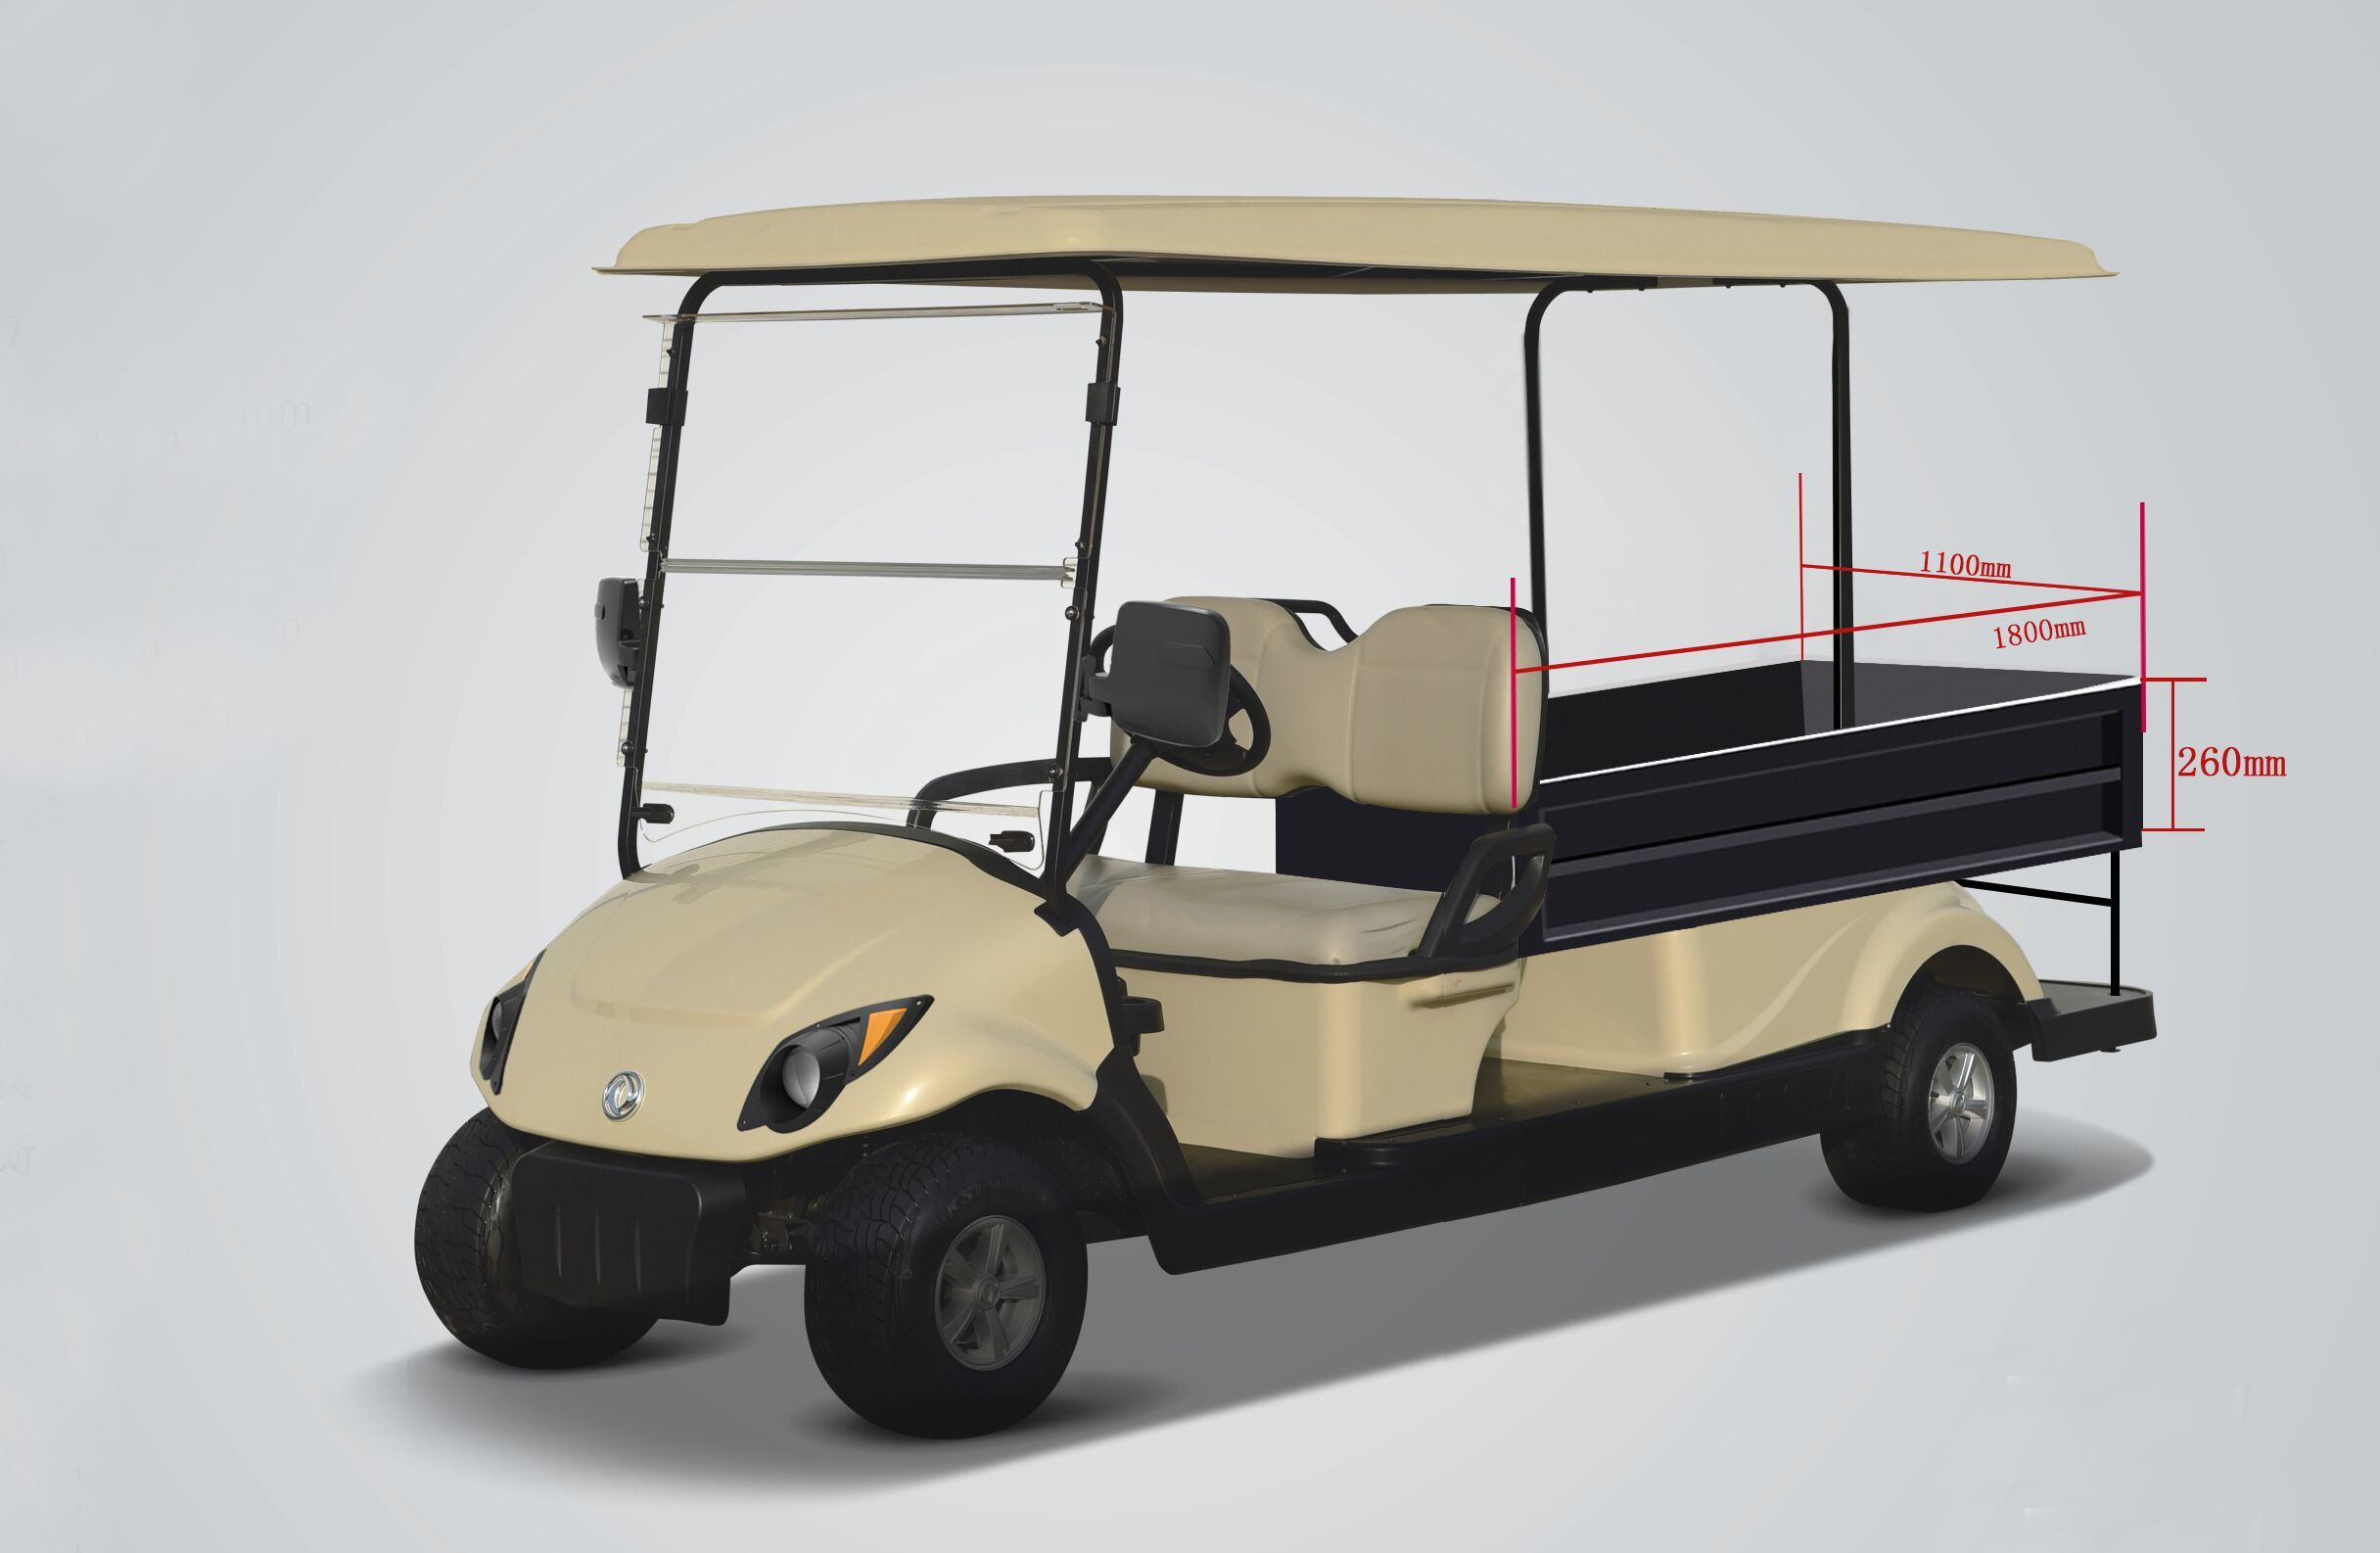 New 2 Seater Electric Golf Cart with a Cargo Box